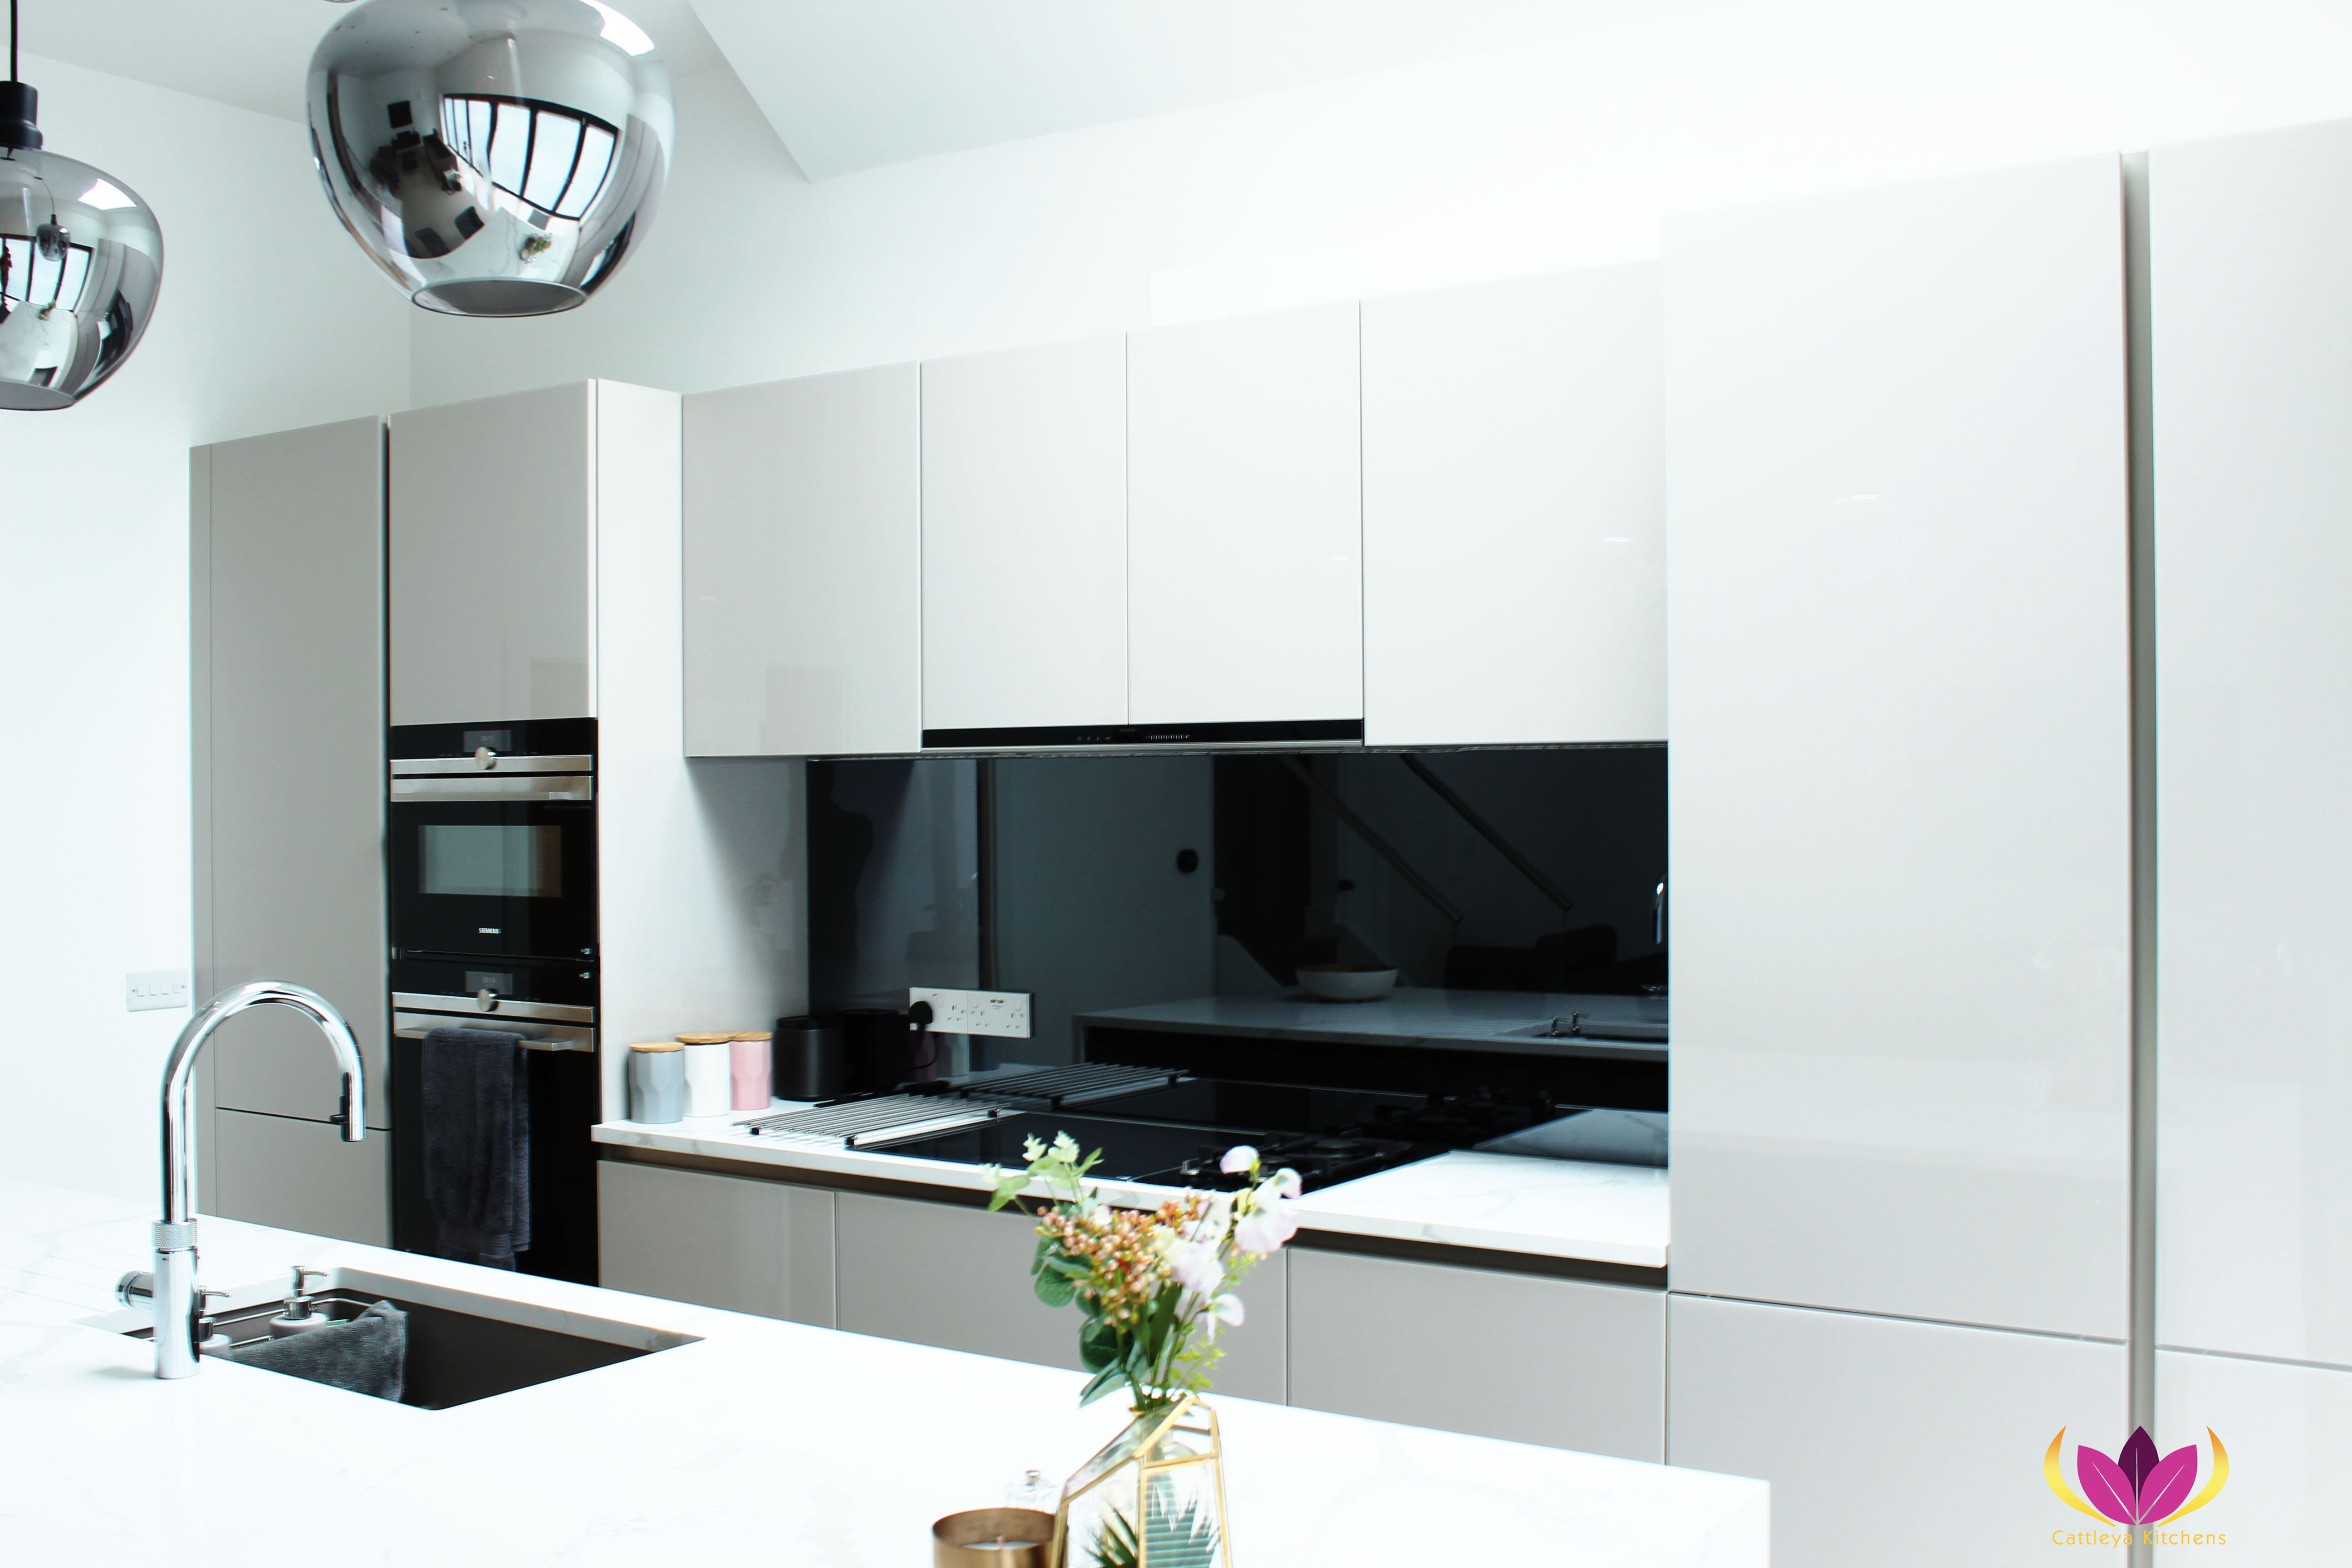 Greenford Finished Kitchen Project